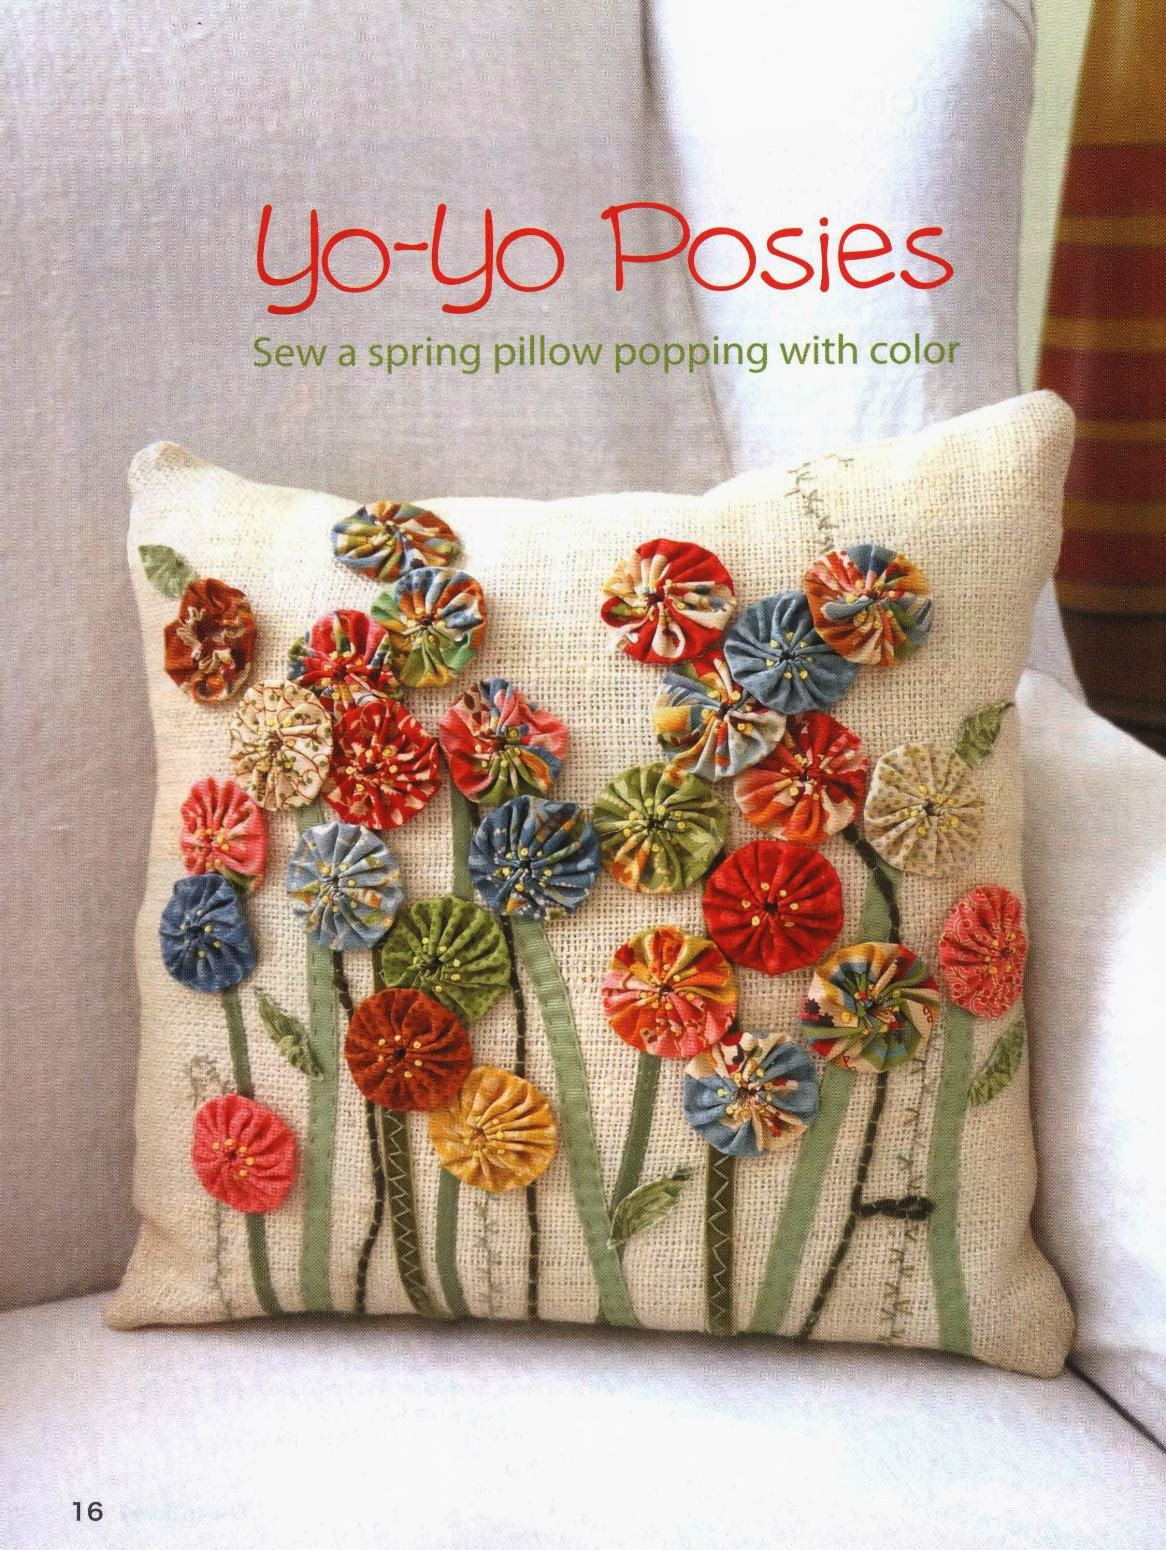 Yo-Yo Posies. Sew a spring pillow popping with color. Подушка